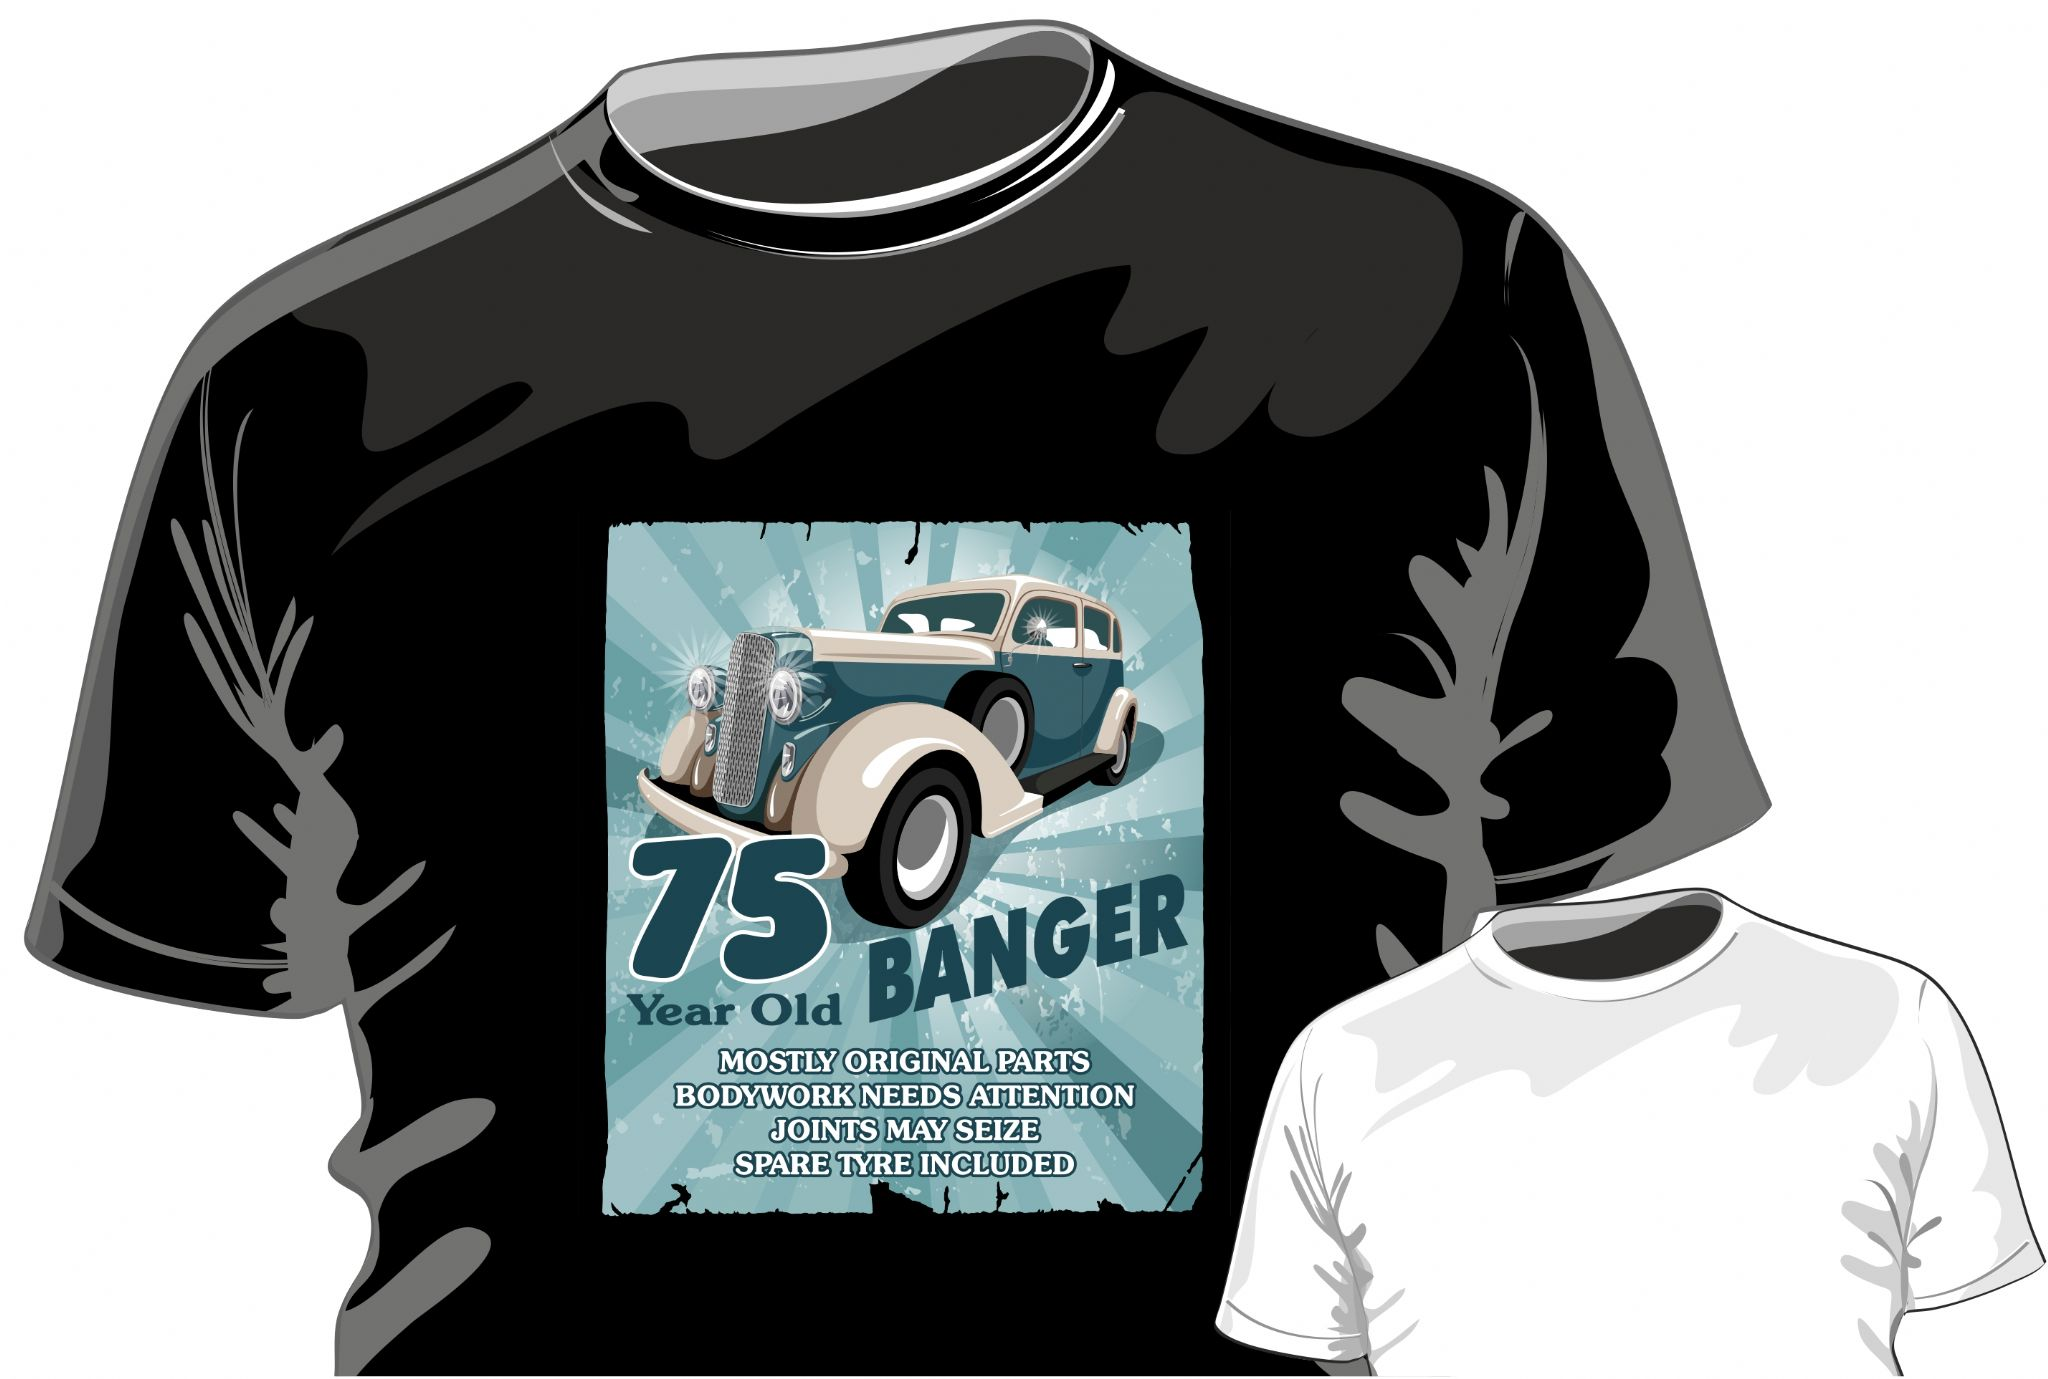 Funny 75 Year Old Banger Retro Car Motif For 75th Birthday Occasion Anniversary Gift Mens Or Ladyfit T Shirt